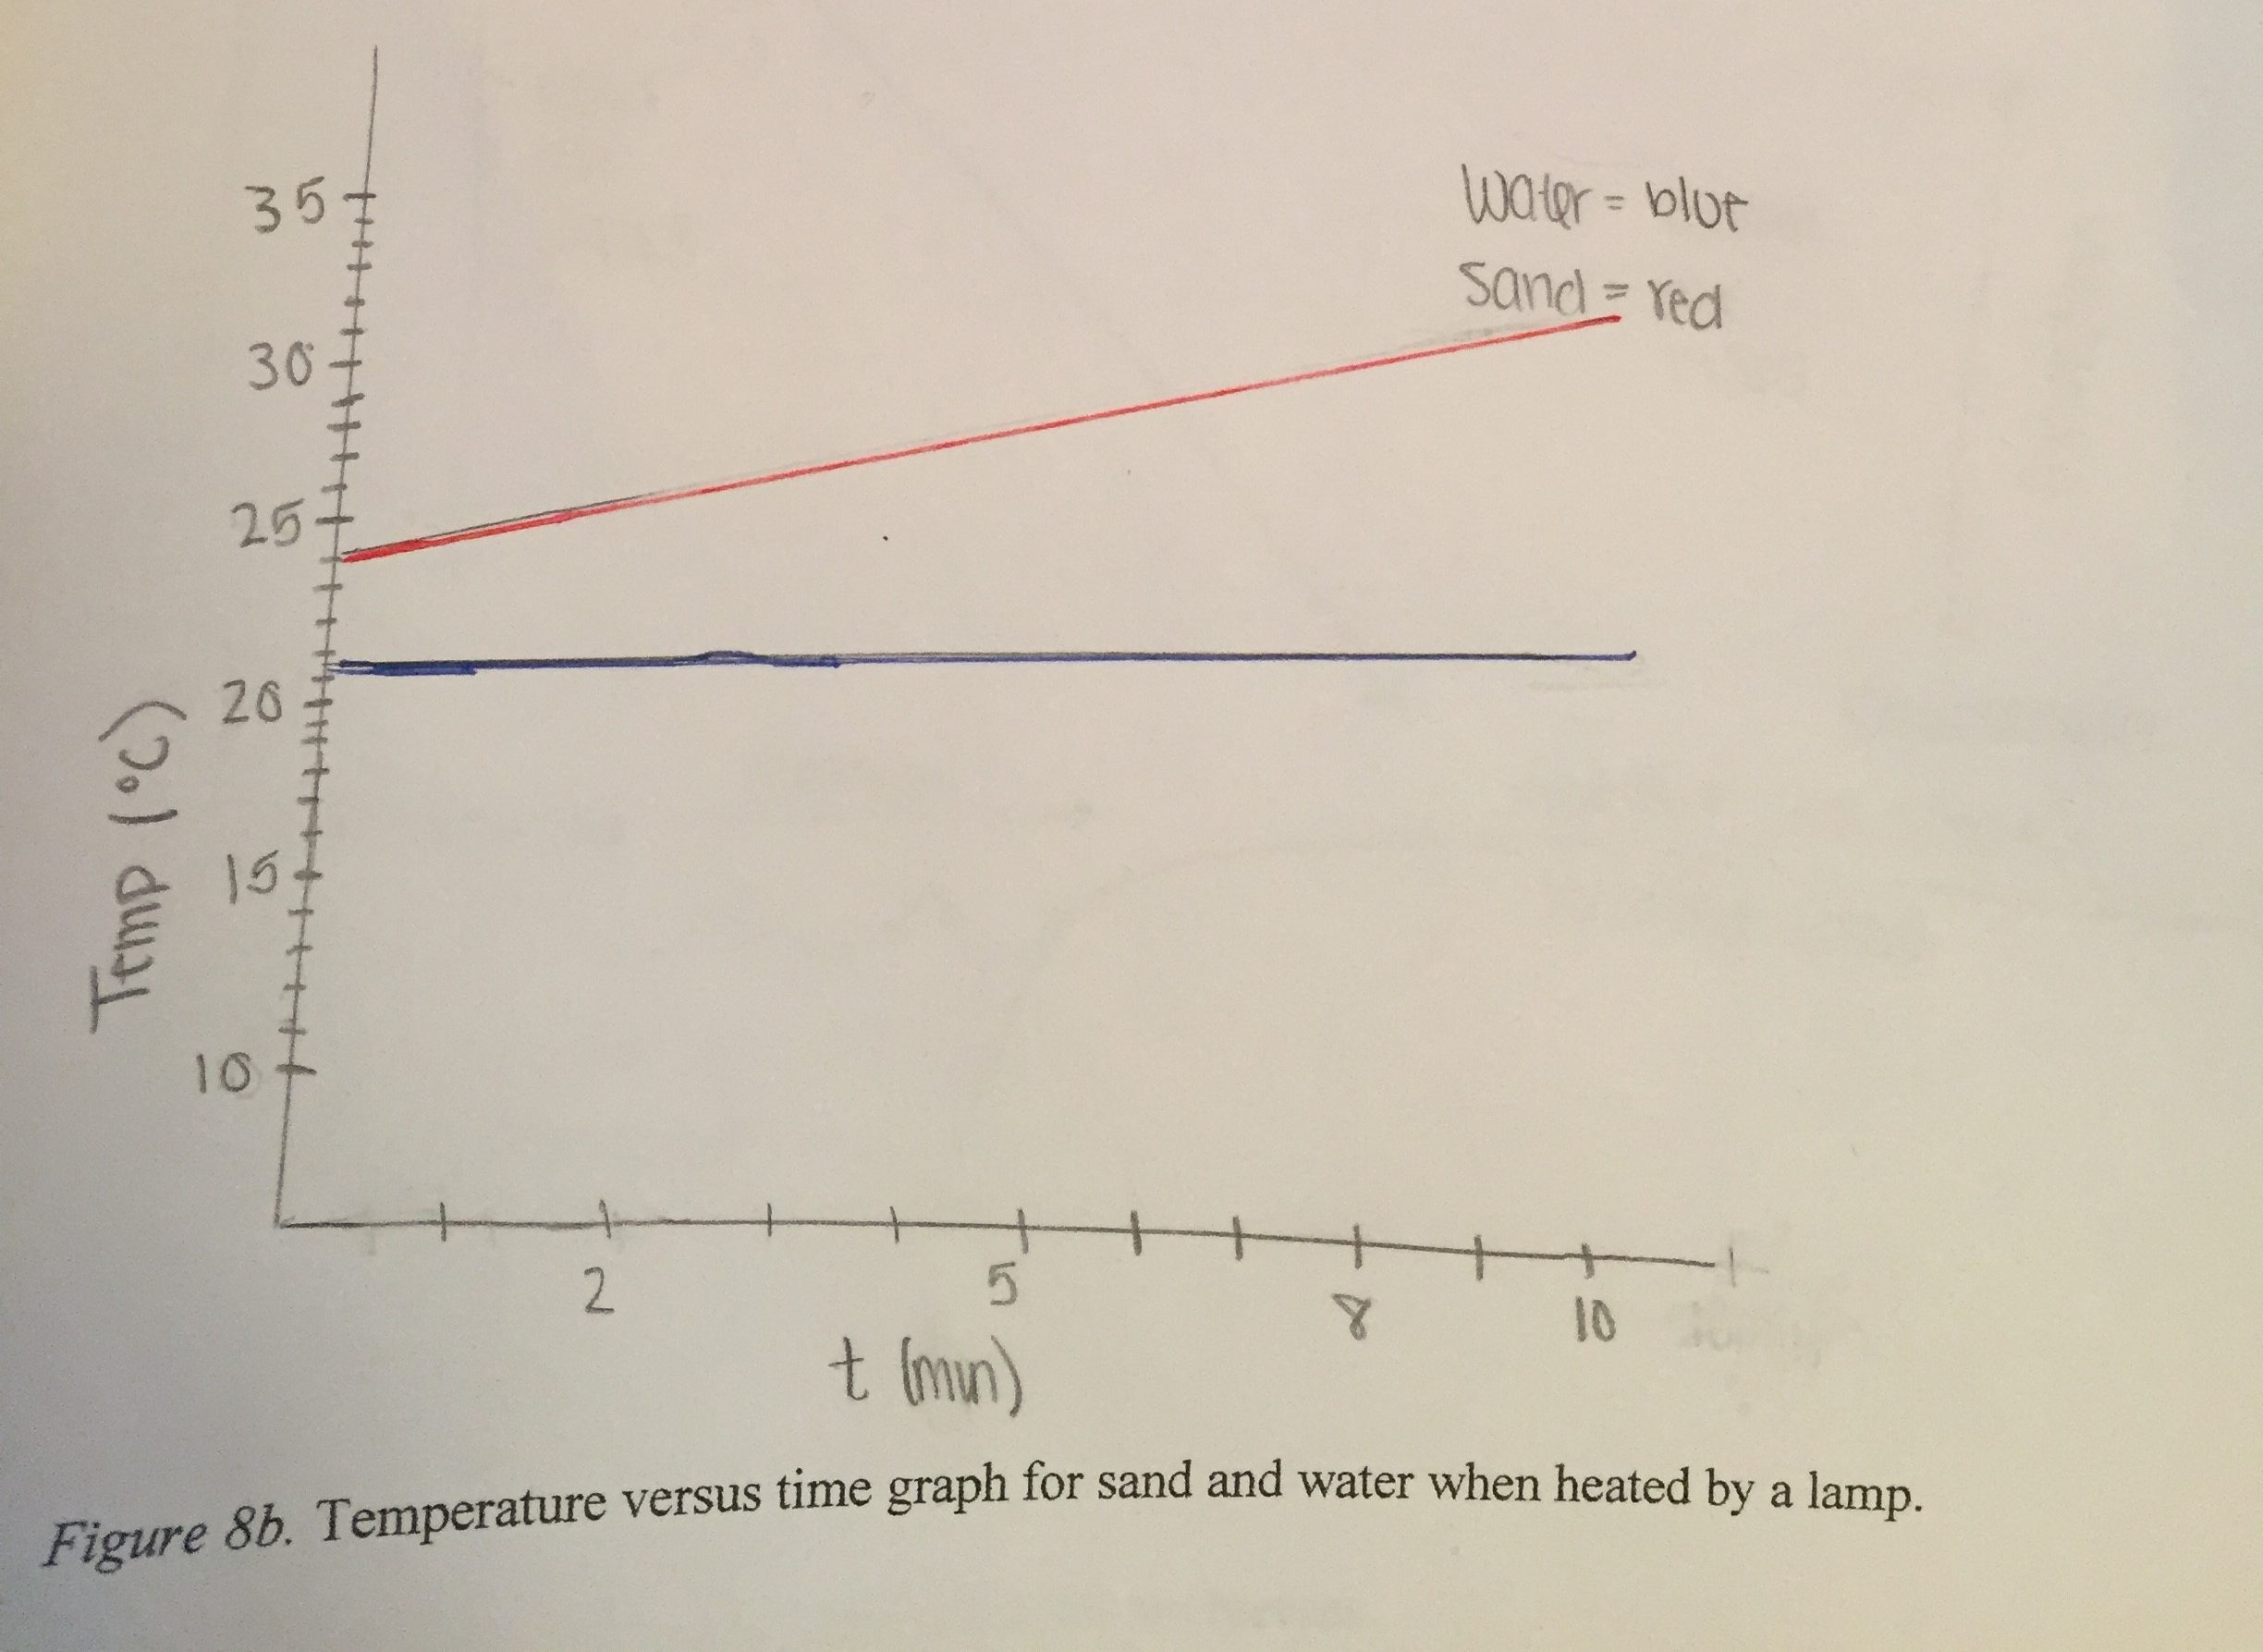 Student's graph of temperature changes for sand and water